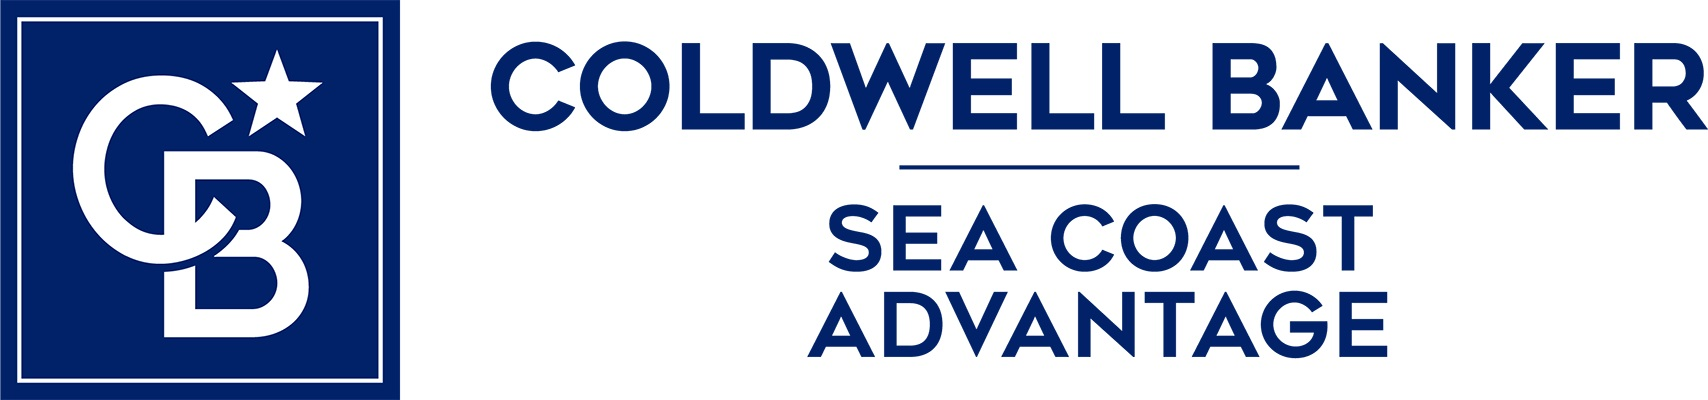 Pete Key - Coldwell Banker Sea Coast Advantage Realty Logo